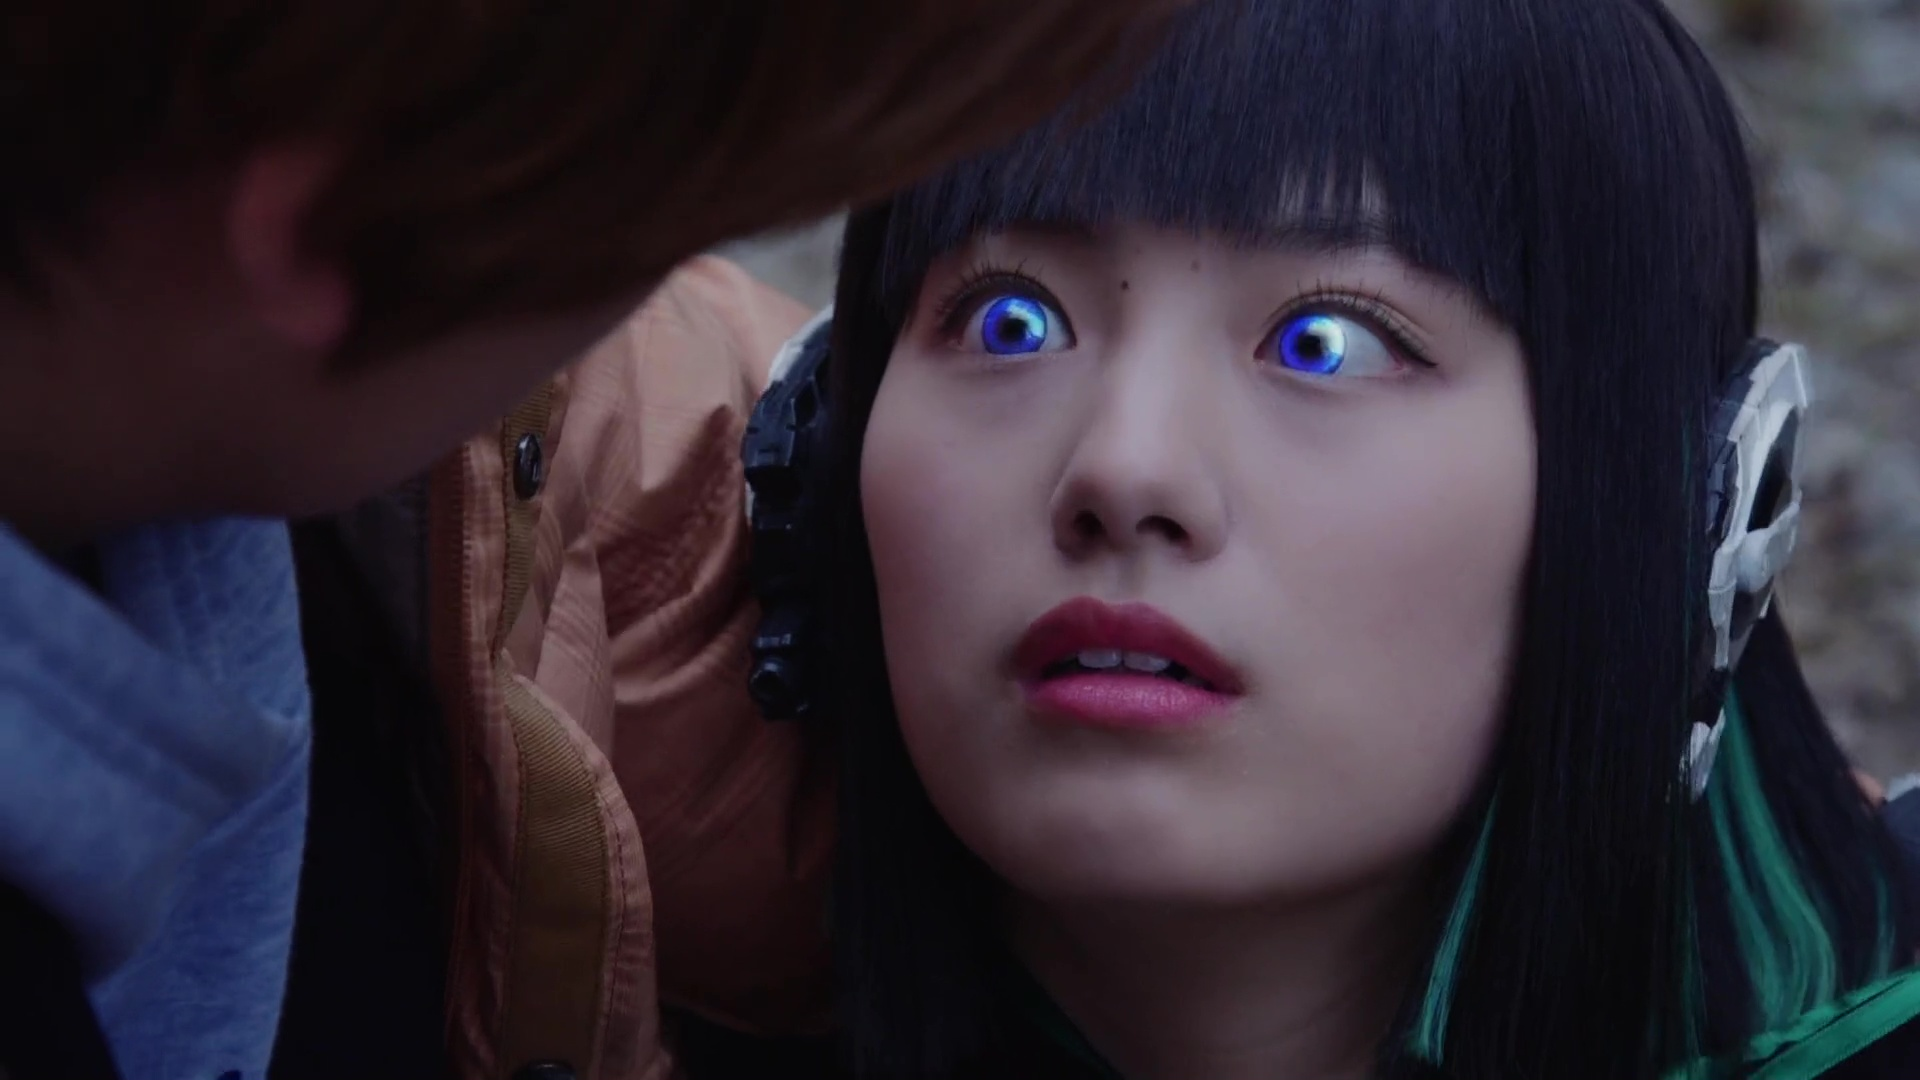 Kamen Rider Zero One Episode 15 Recap